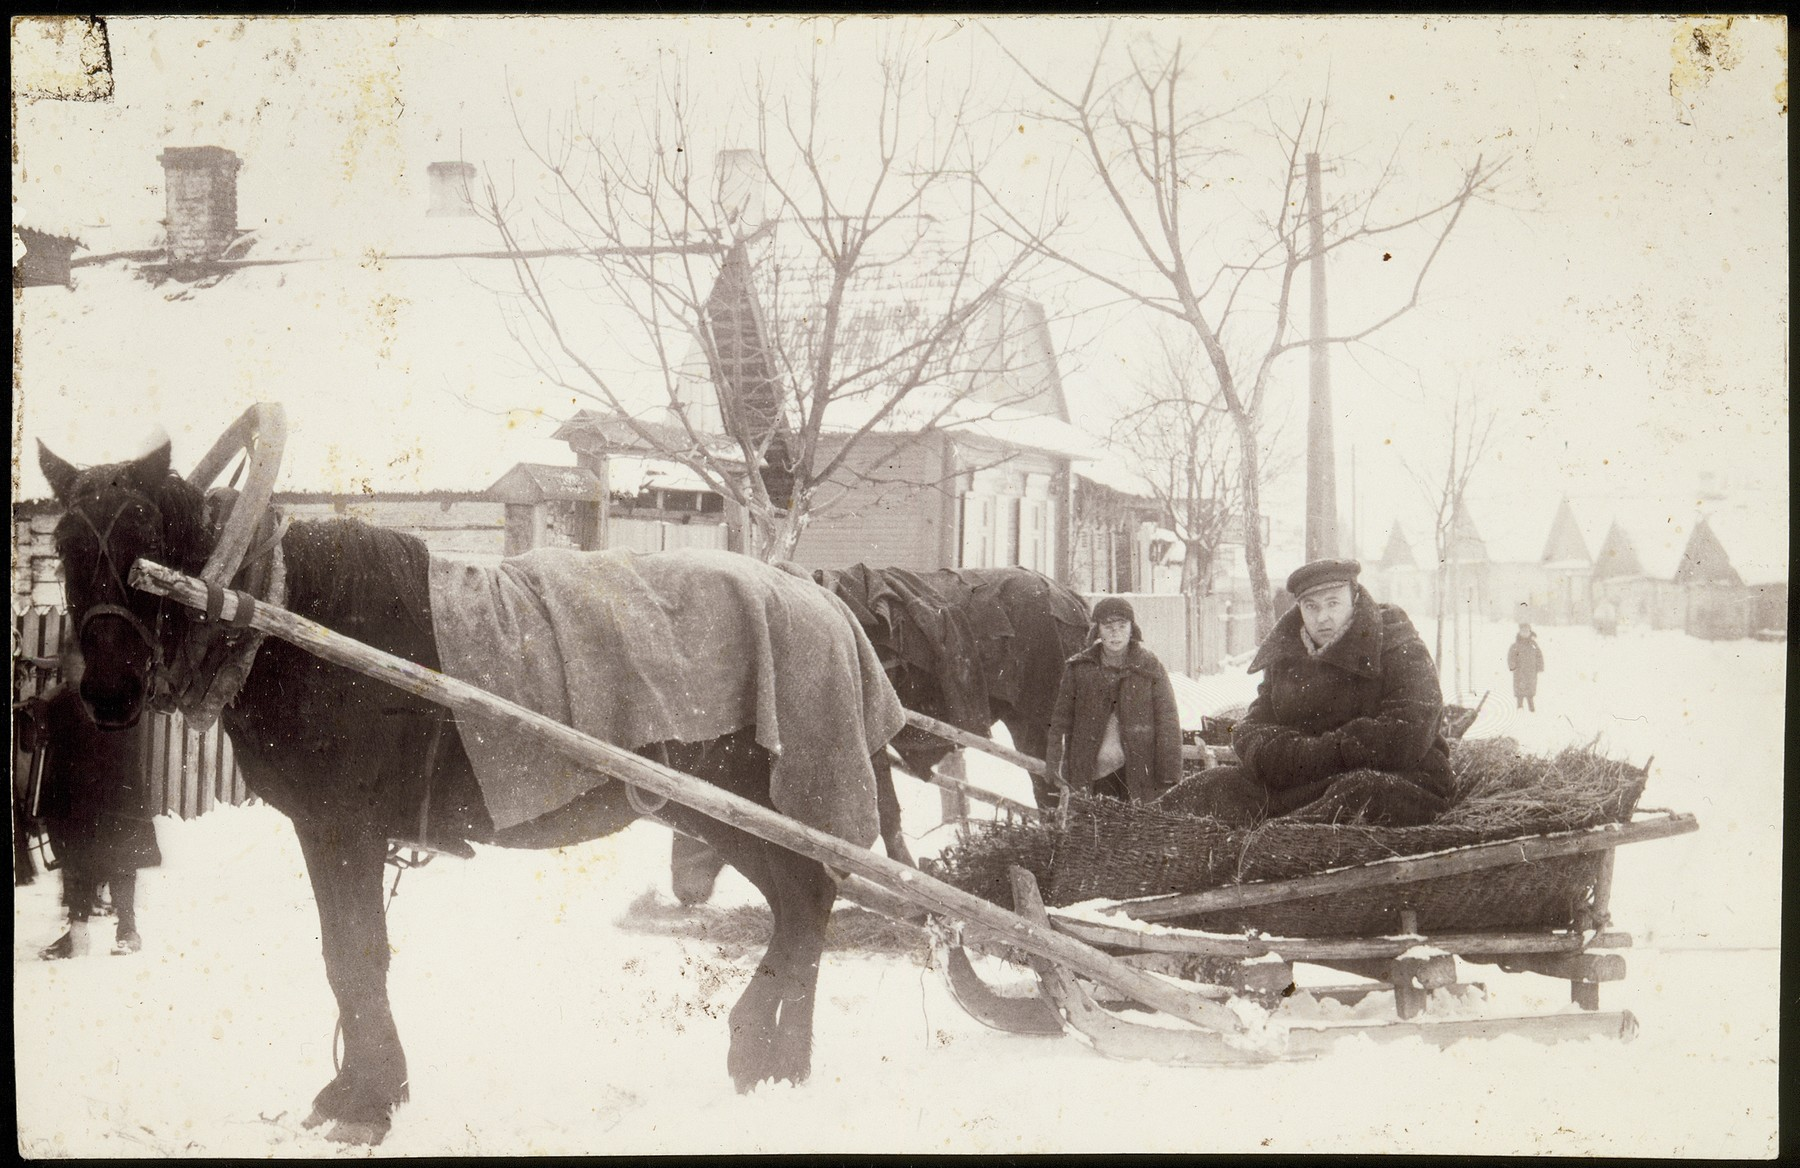 """Dr. Leon Gordon drives to a house call on a horse drawn sleigh through a snowy street in Eisiskes.  On the back of the photo is written """"Sitting in my Packard, 1938 model"""".  Dr. Gordon was killed in Ponar."""